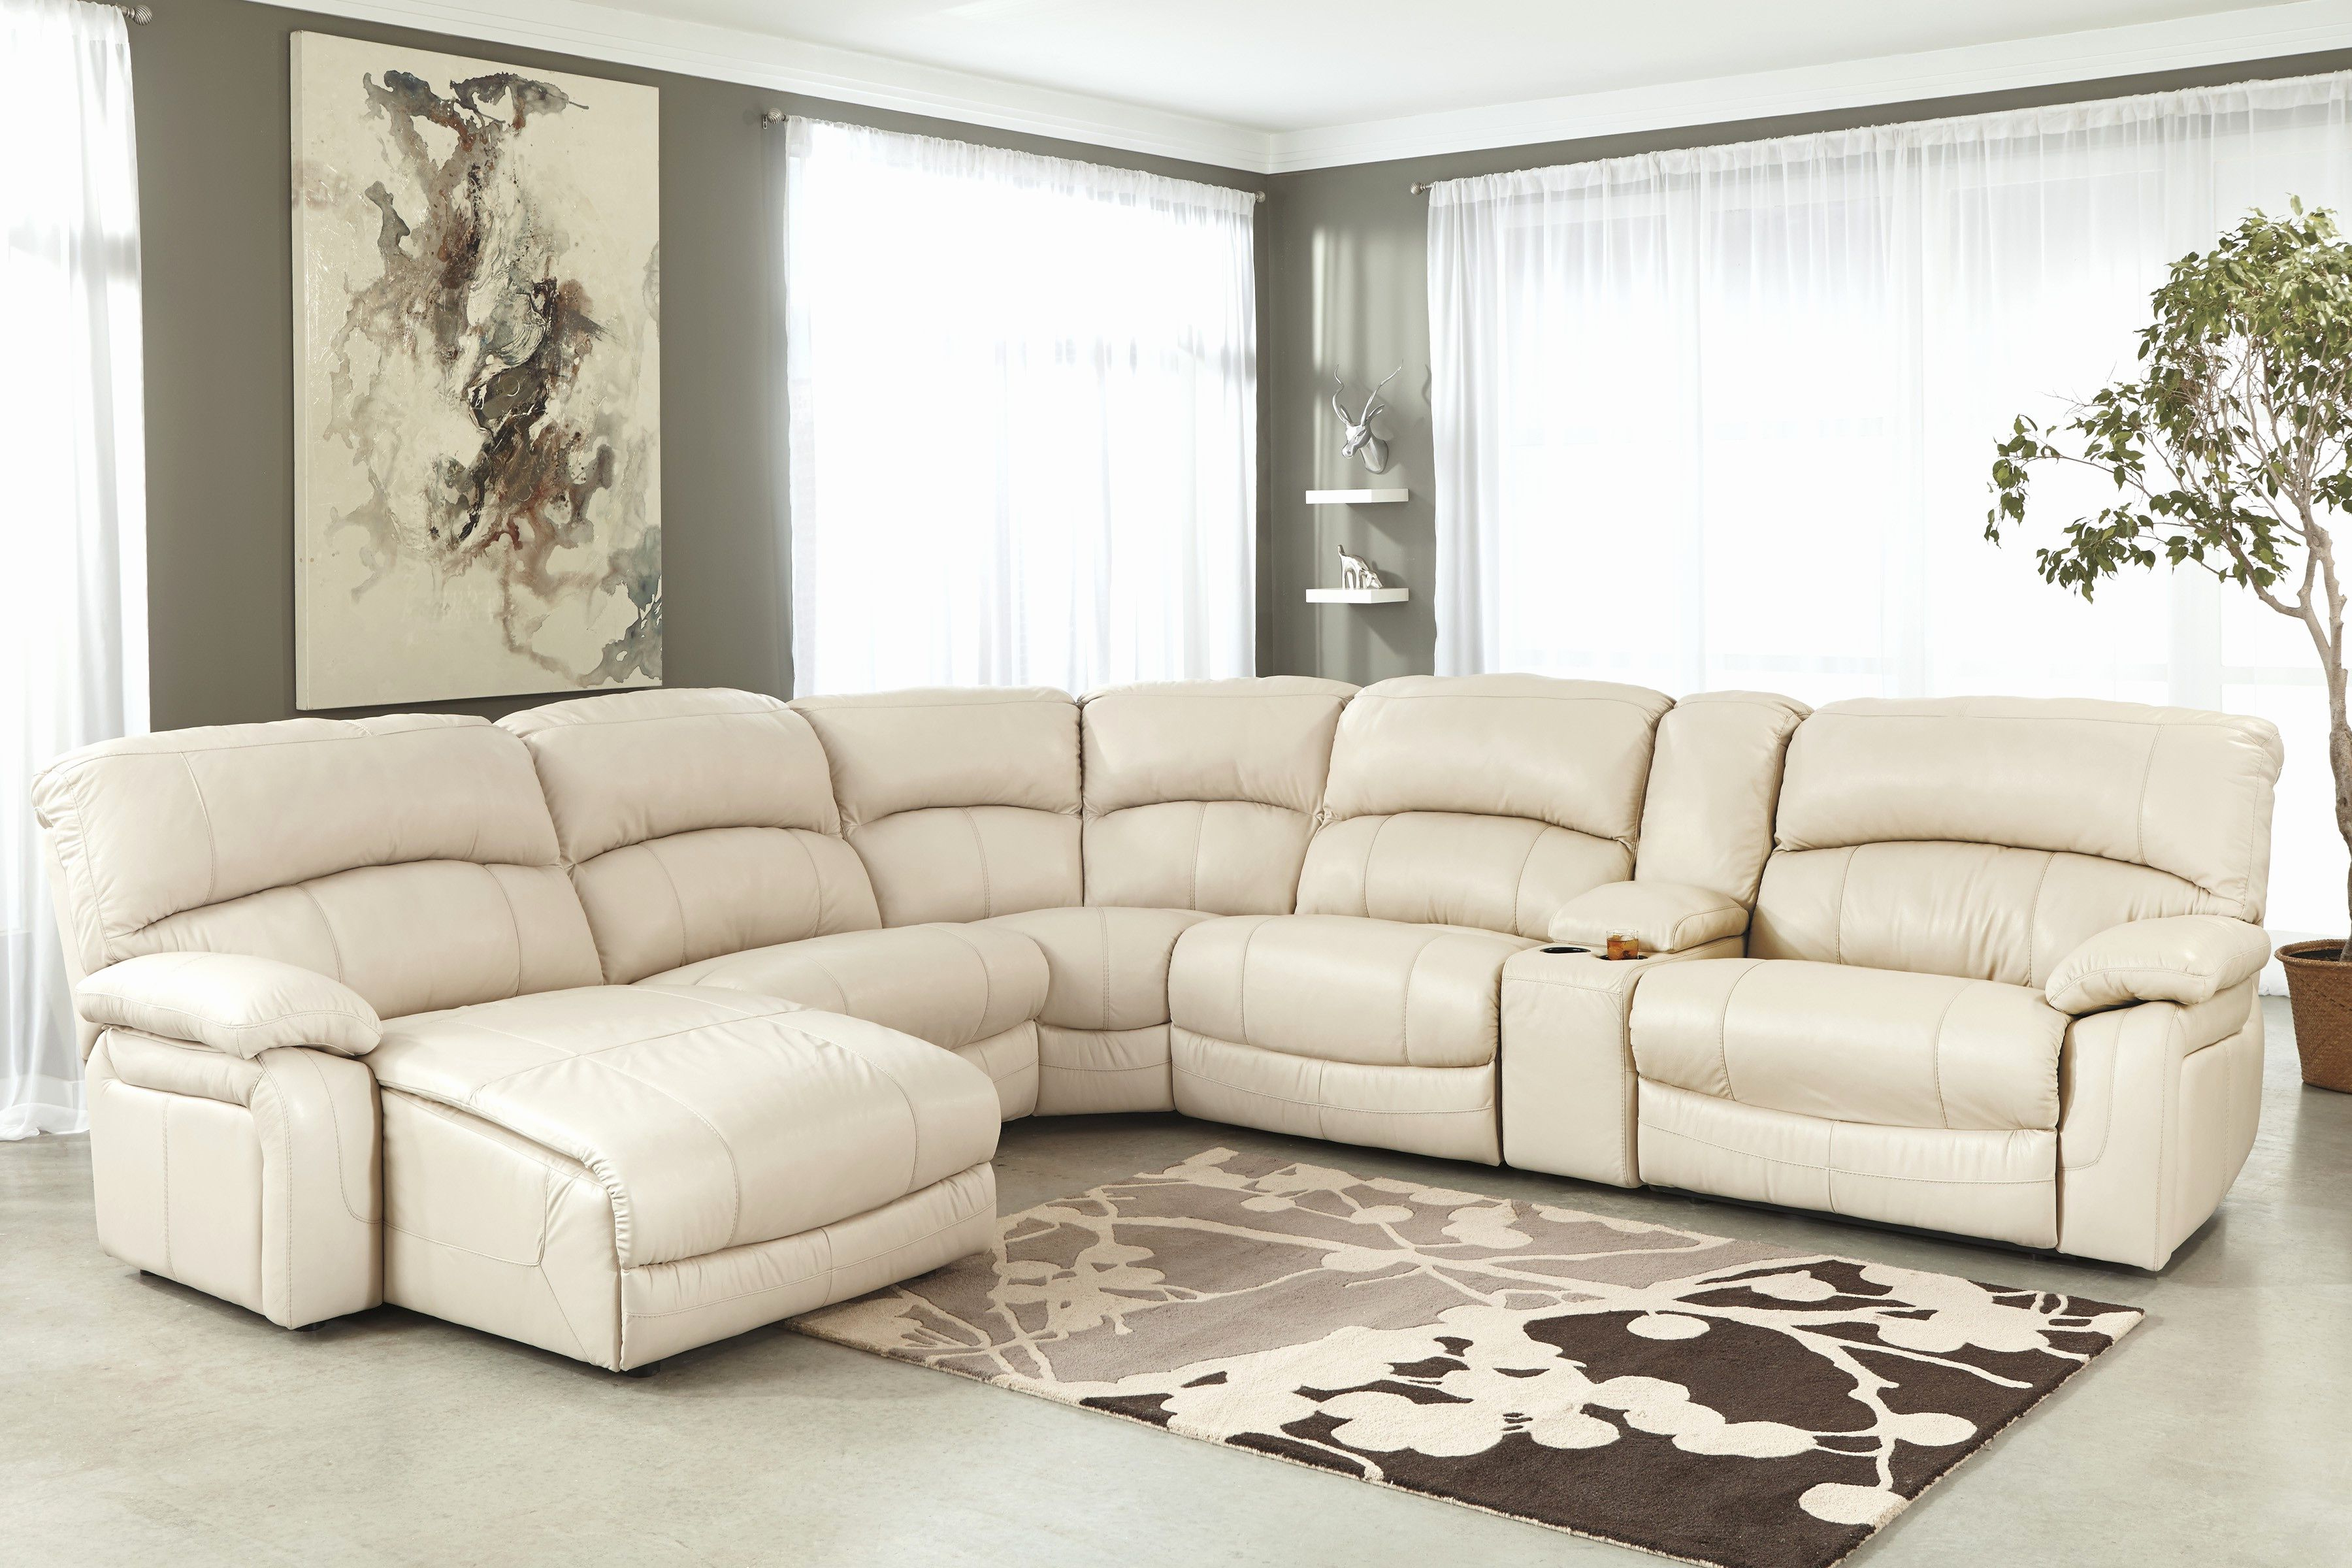 Current New Cream Sectional Sofa Pics Cream Leather Sectional Sofa With Within Marcus Chocolate 6 Piece Sectionals With Power Headrest And Usb (View 3 of 20)